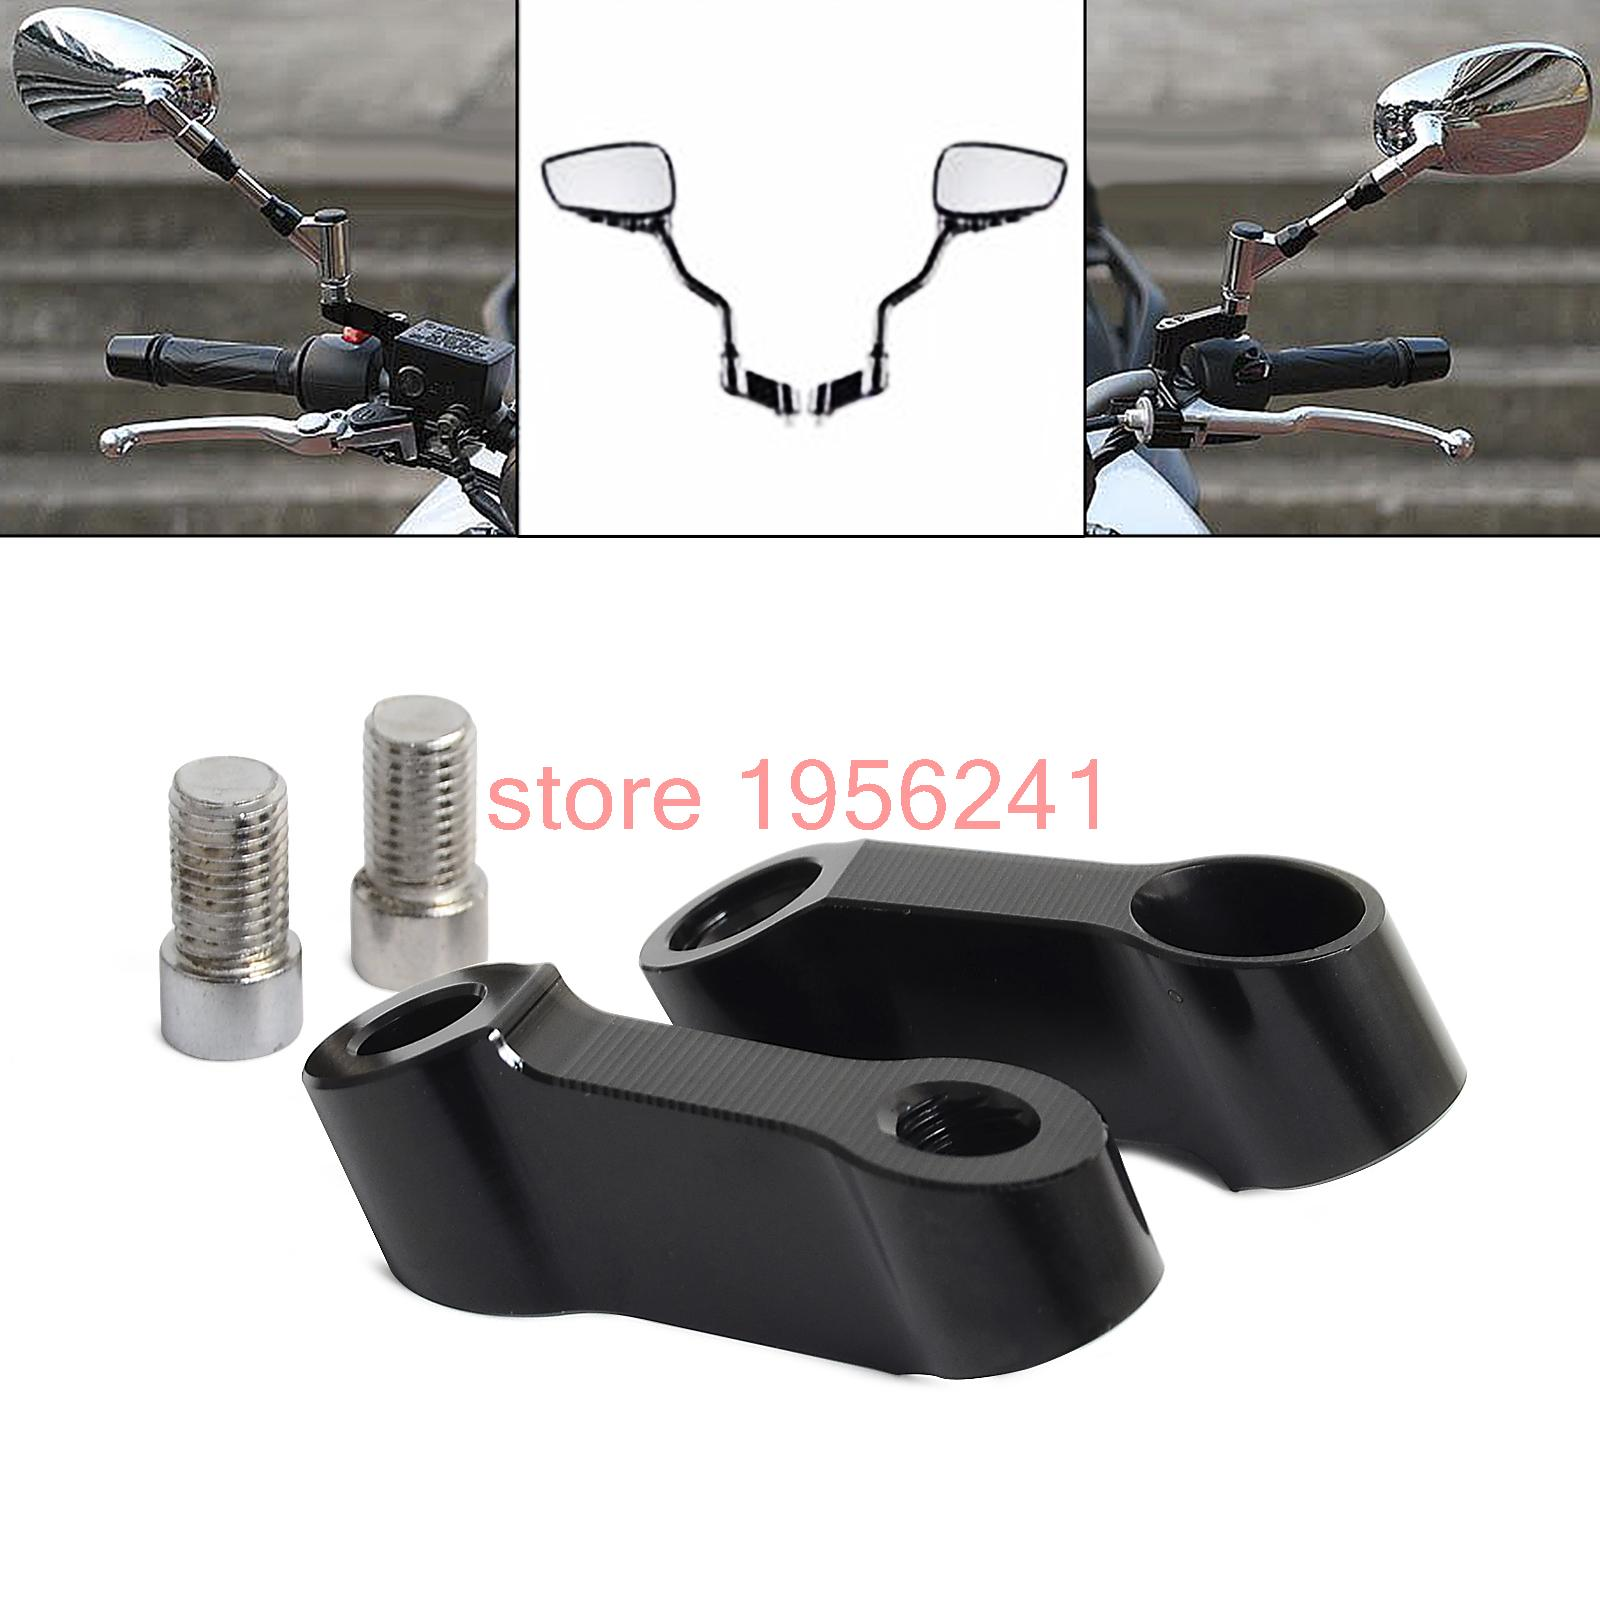 Black Bolts Size 10mm Mirrors Extension Riser Extend Adapter For Kawasaki  Z250 Z750 Z800 Z1000 ER-6N ER6N ZRX1100 ZRX1200 zoomer ruckus fi nps50 black engine frame extend extension kit with handle post